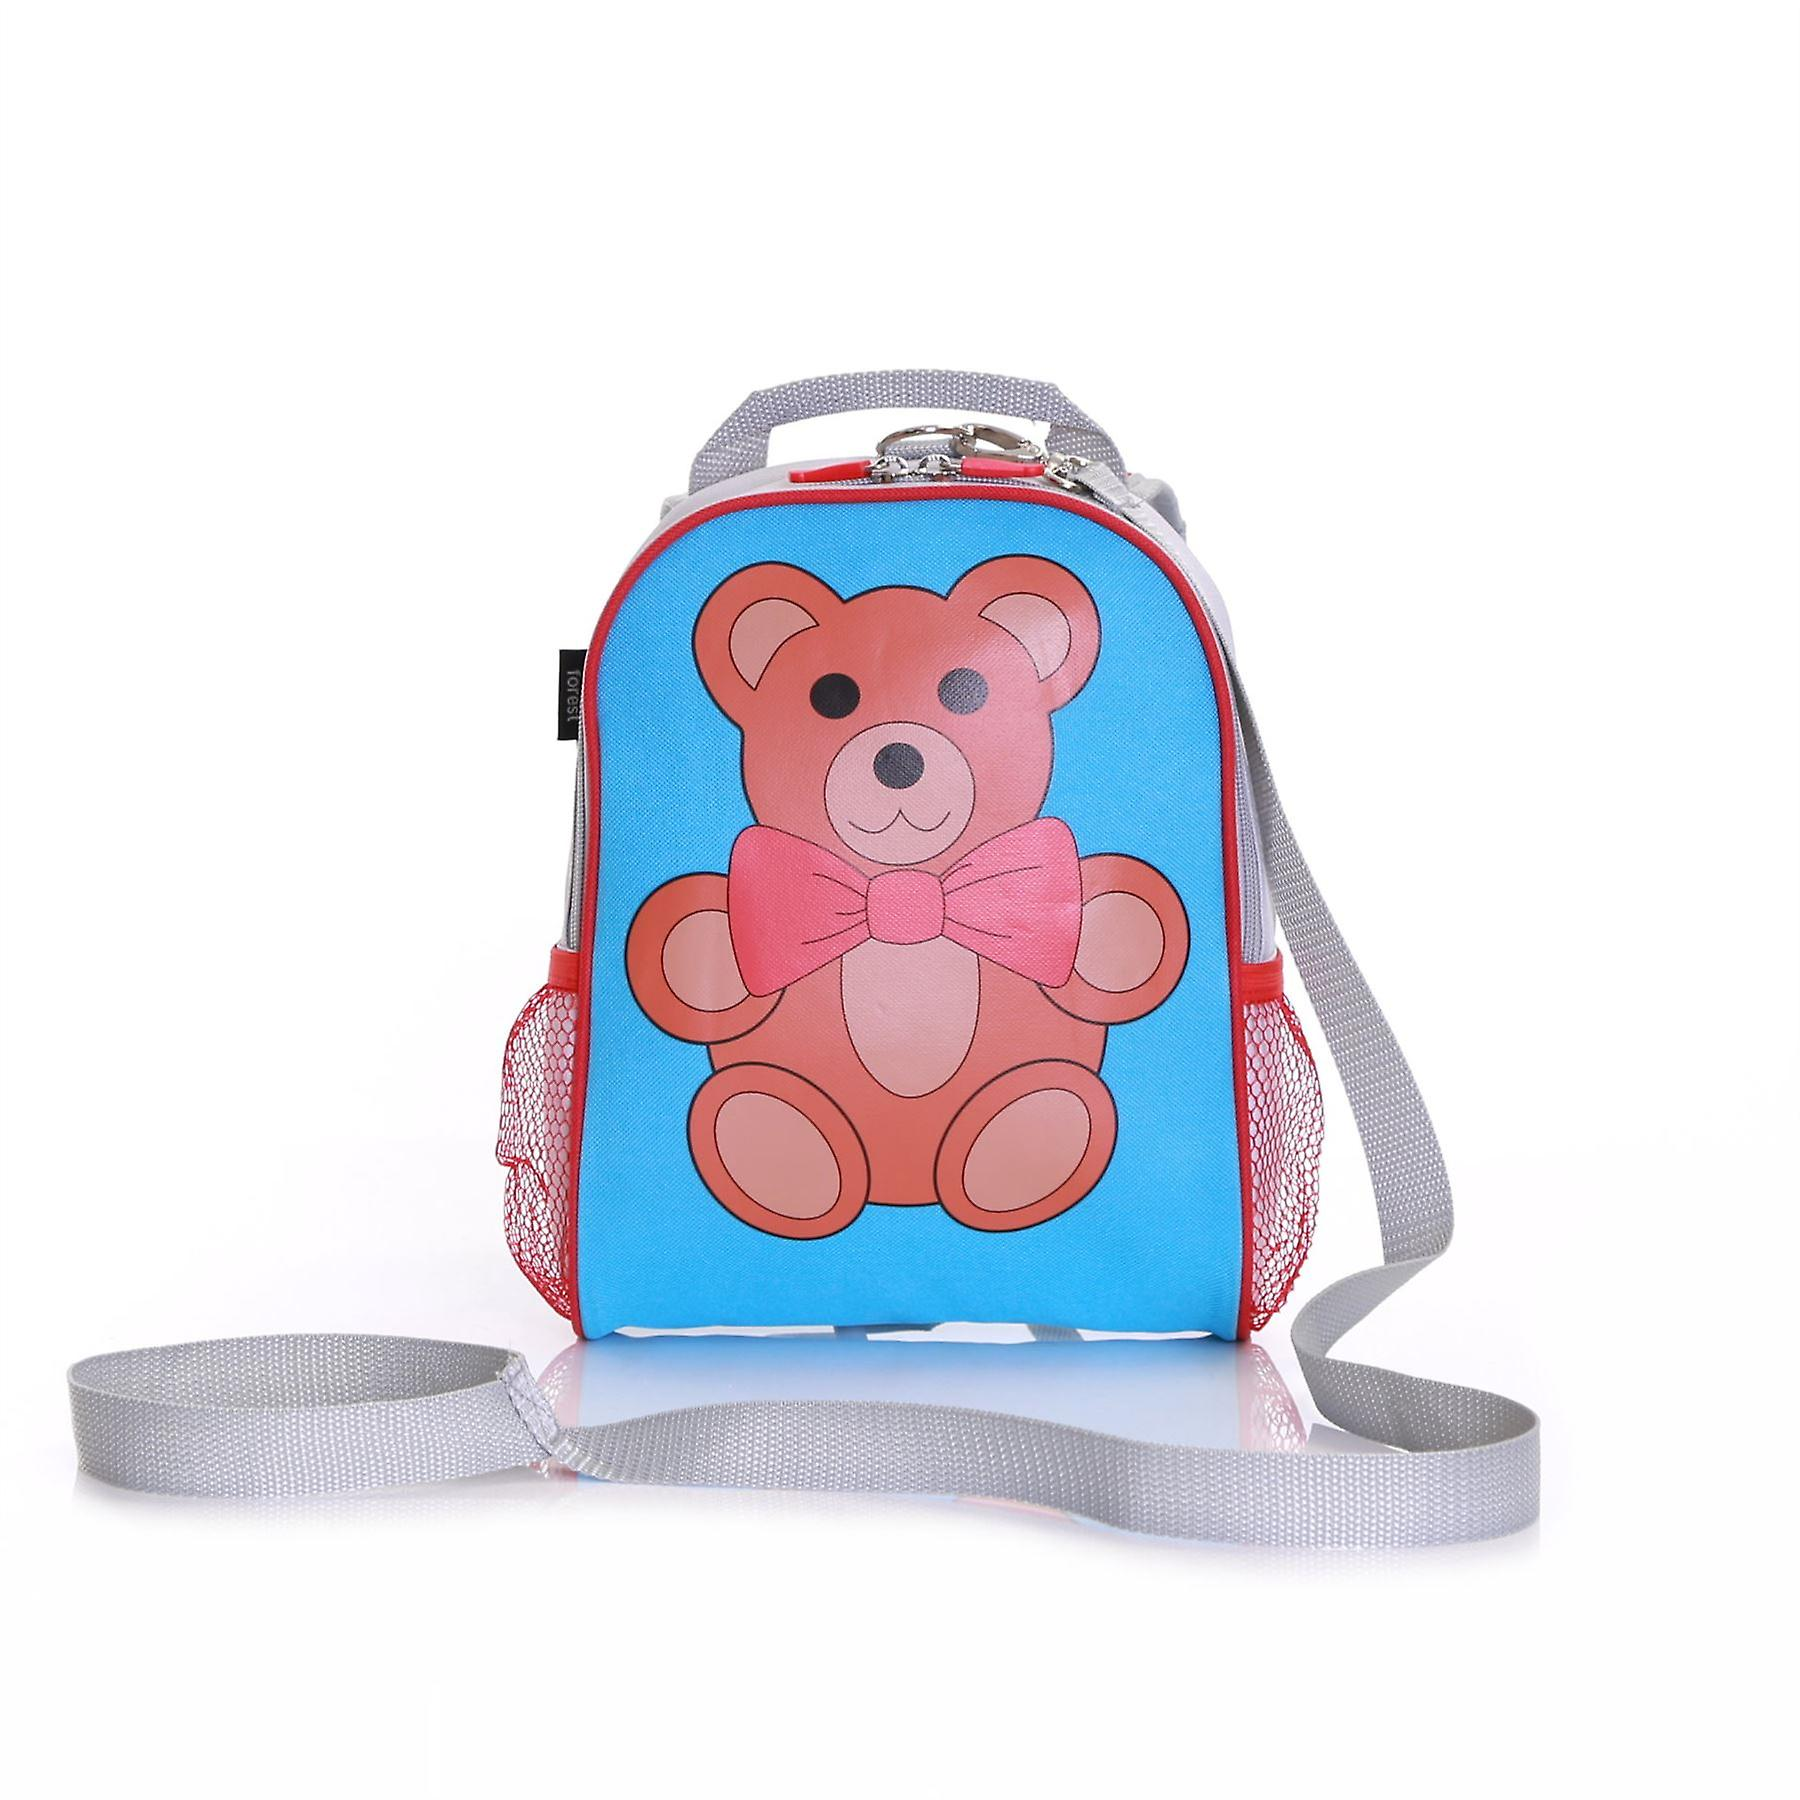 Wobbly Forest Teddy Toddler Backpack With Safety Rein, Blue/Red